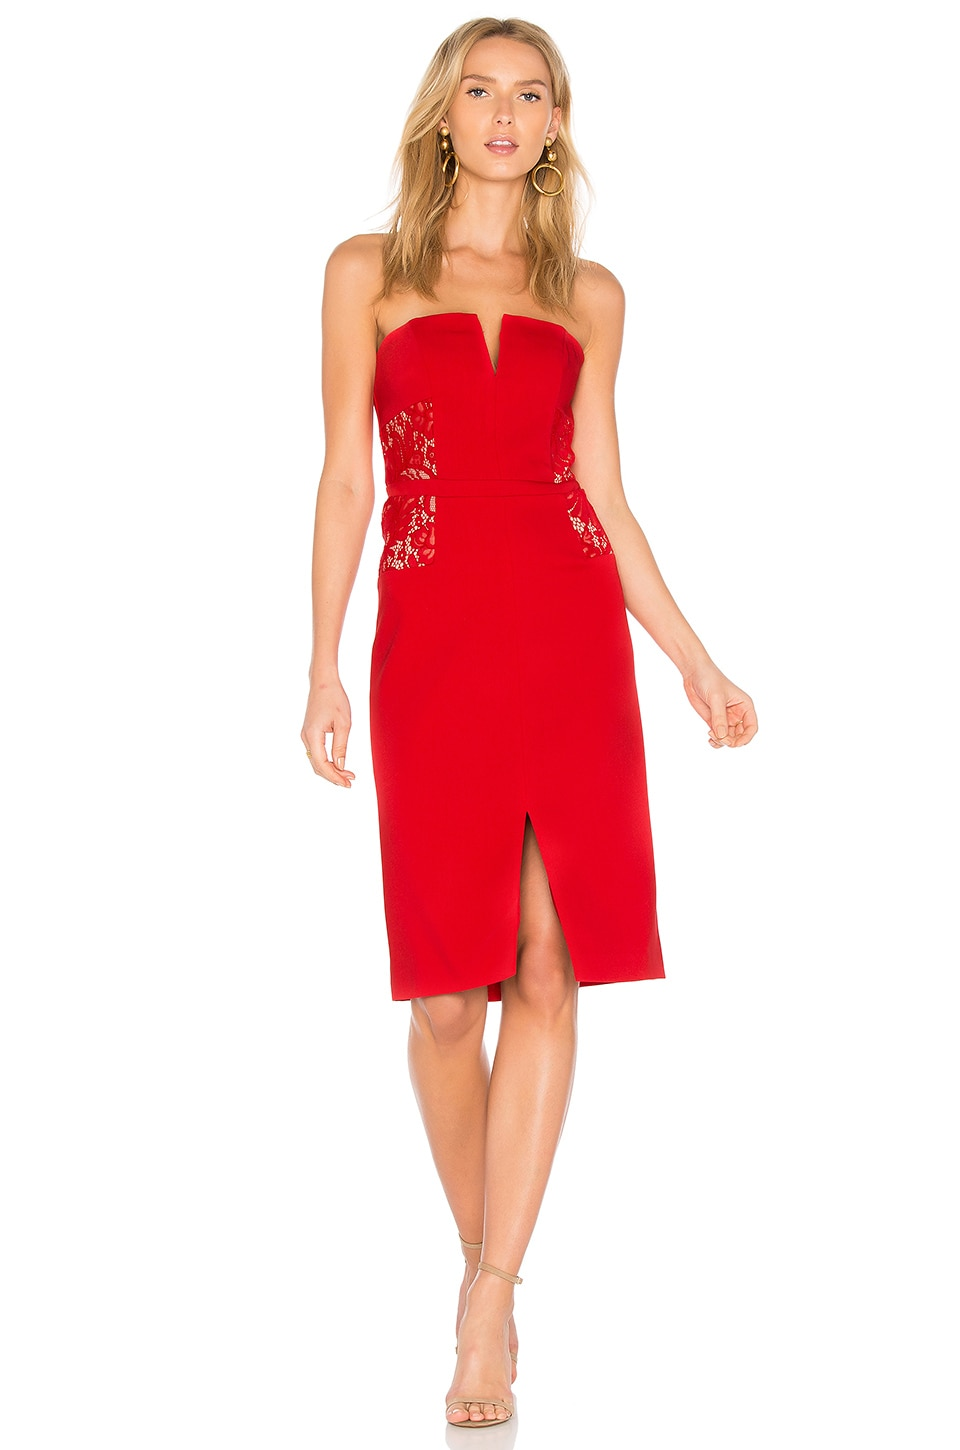 BB Dakota RSVP by BB Dakota Zina Dress in Ruby